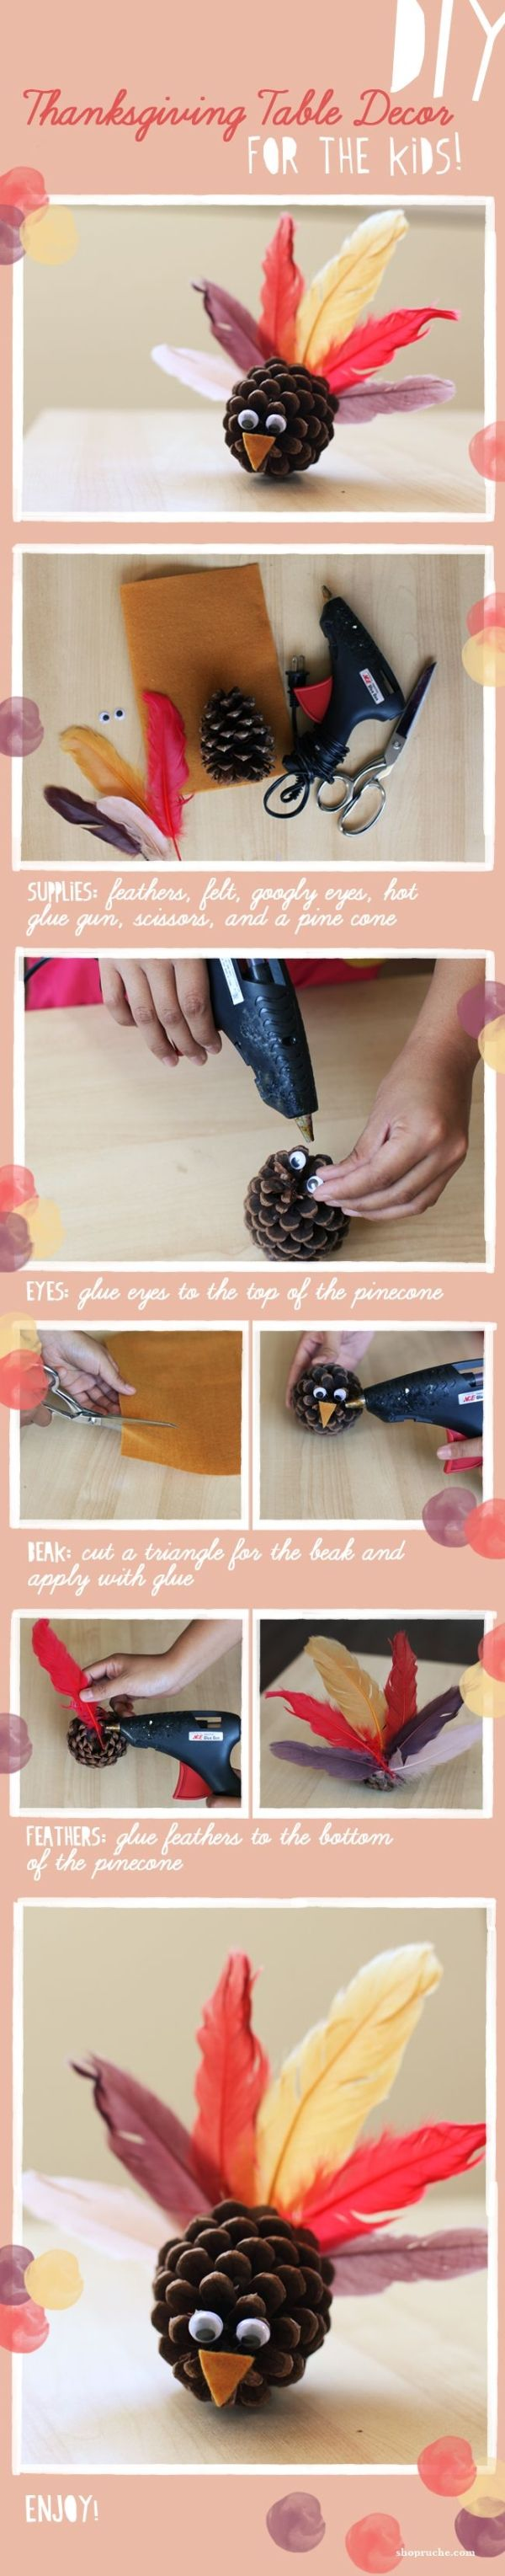 DIY Thanksgiving Pinecone Turkey Decorations good for teachers to do with younger students for around thanksgiving by nancy